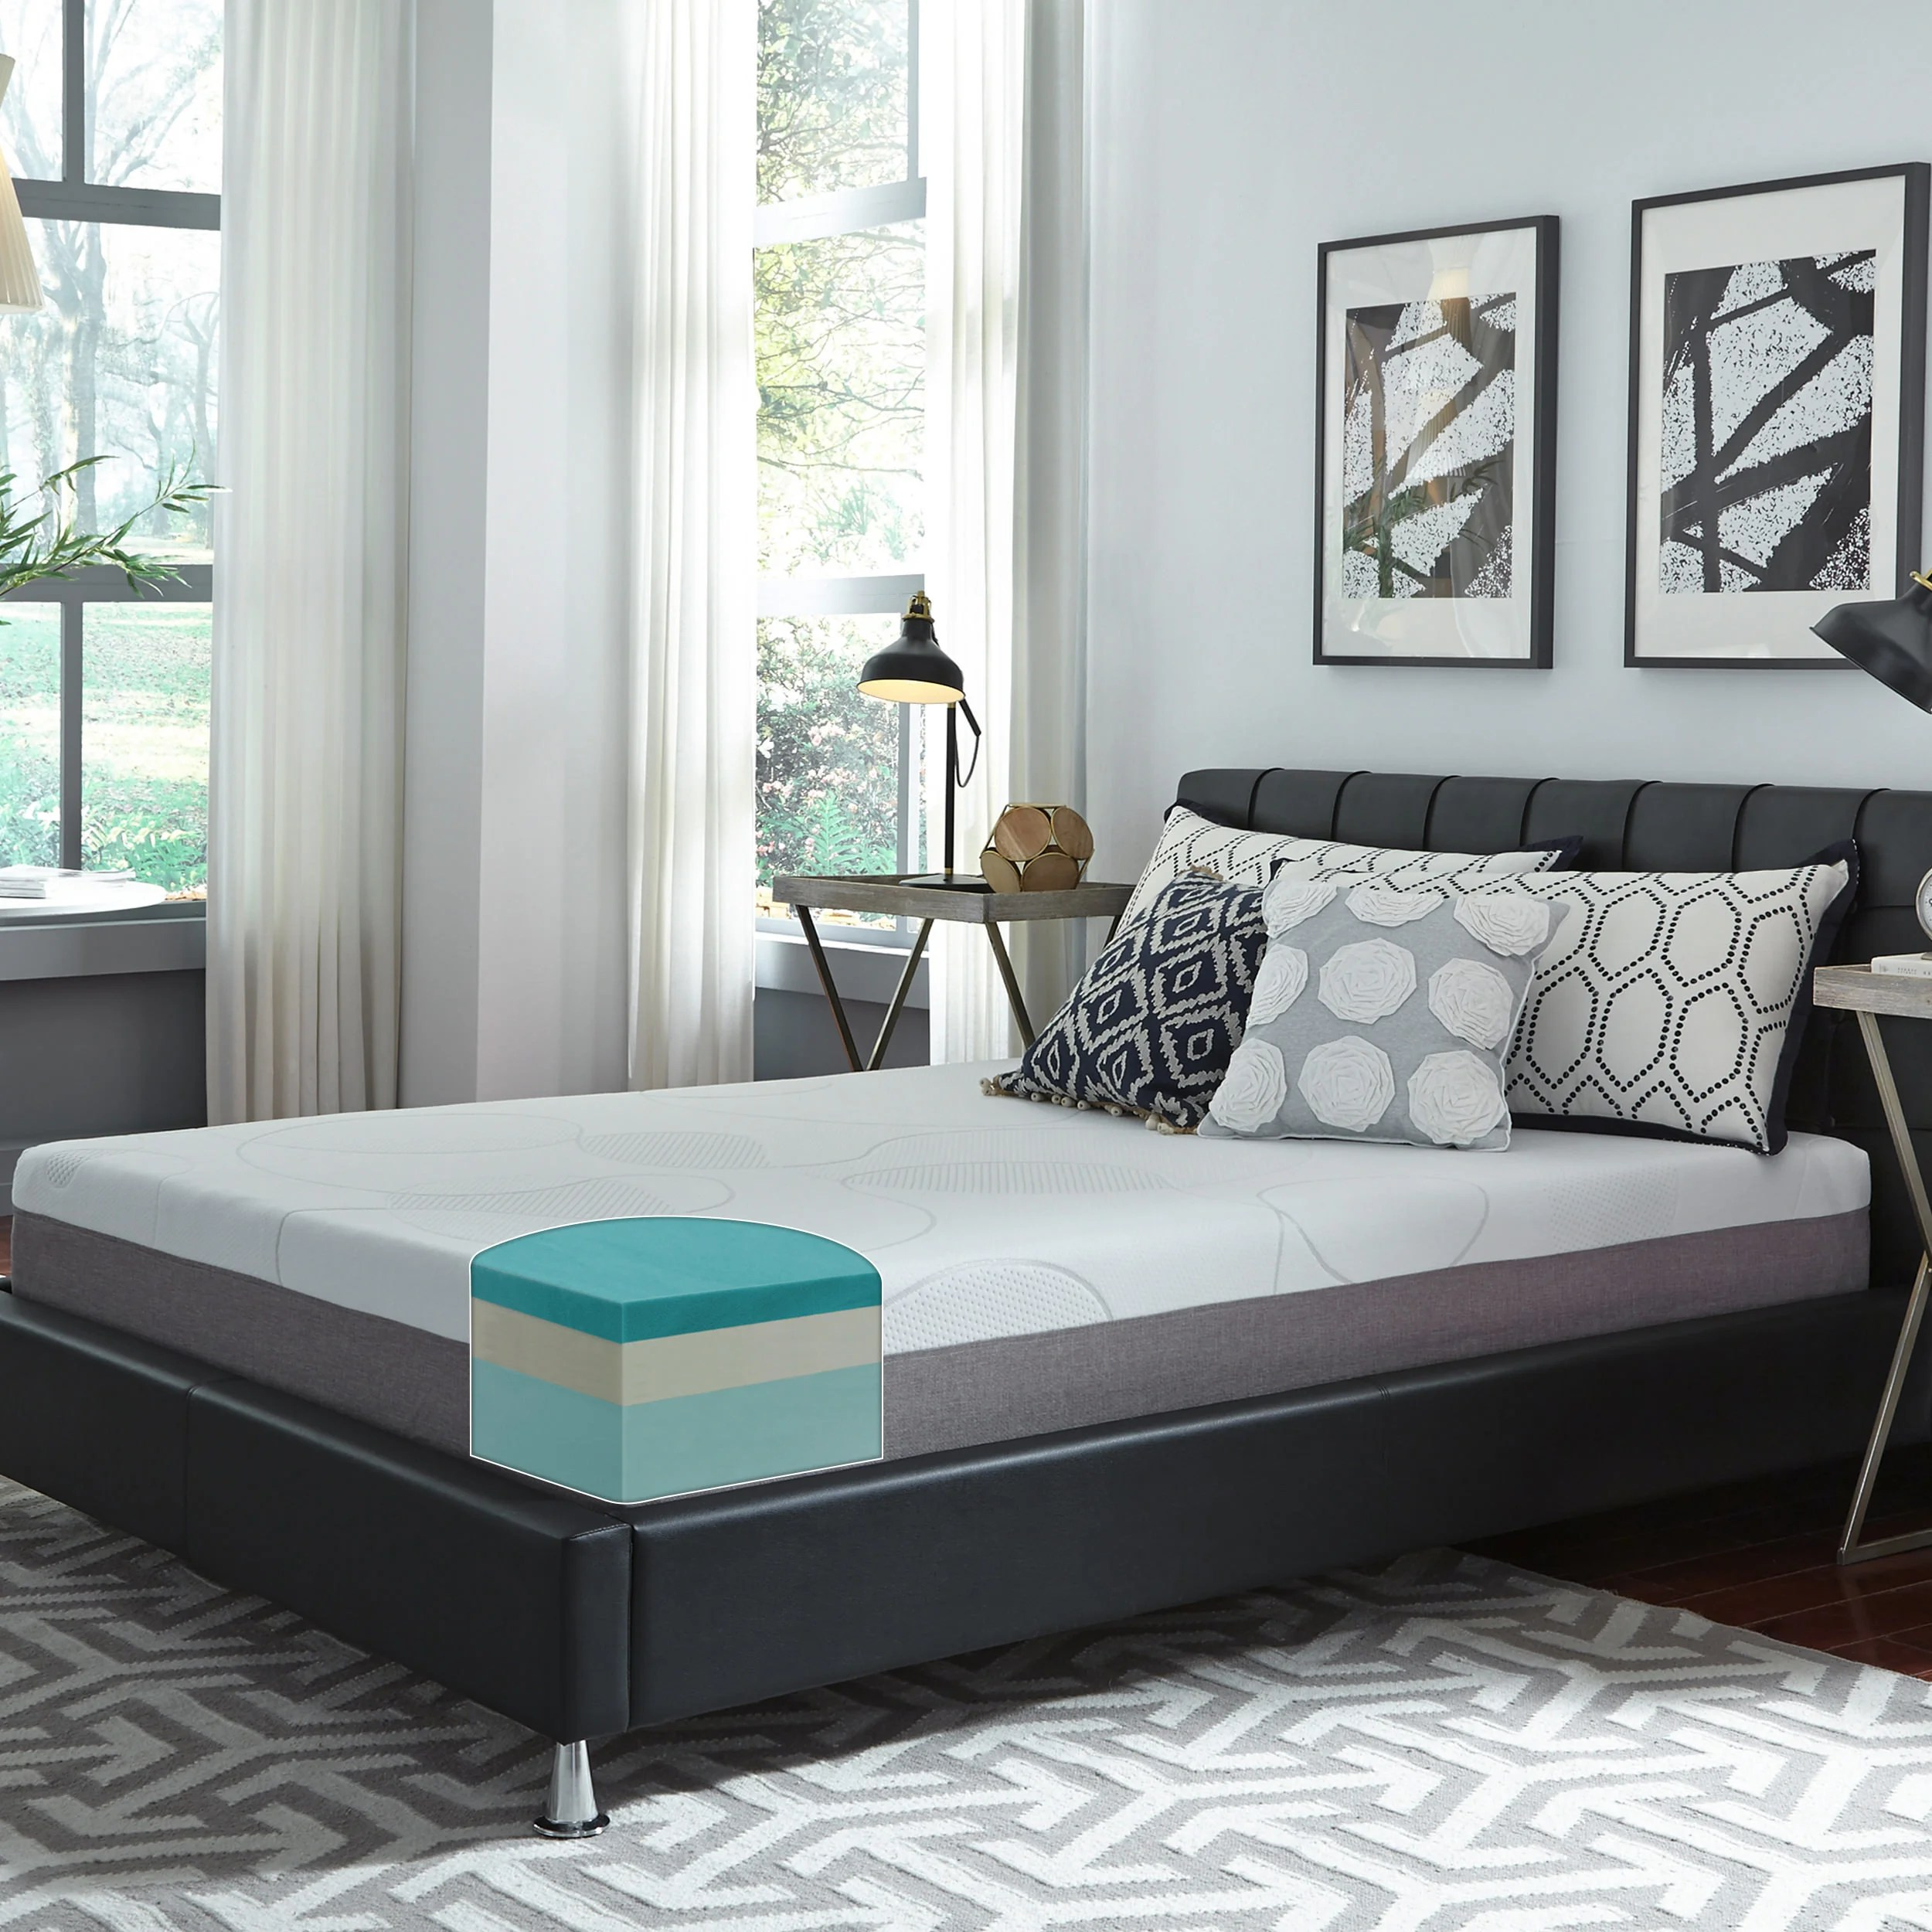 Bed And Mattress Deals Buy Mattresses By Size Type Brands Online At Overstock Our